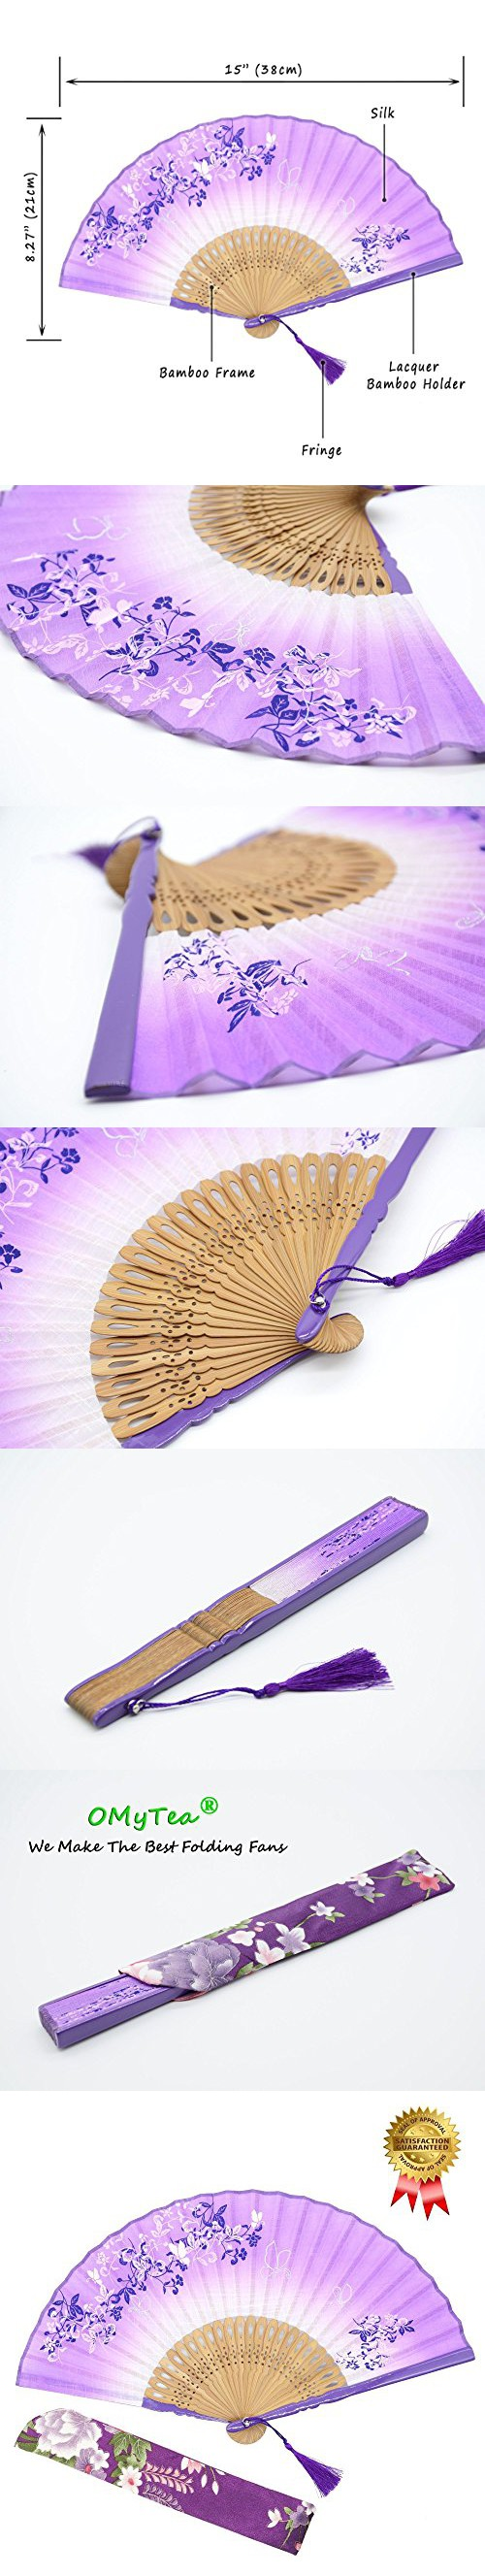 "OMyTea® 8.27""(21cm) Women Hand Held Silk Folding Fans with Bamboo Frame - With a Fabric Sleeve for Protection for Gifts - Chinese / Japanese Style Butterflies & Morning Glory Flowers Pattern (Purple)"